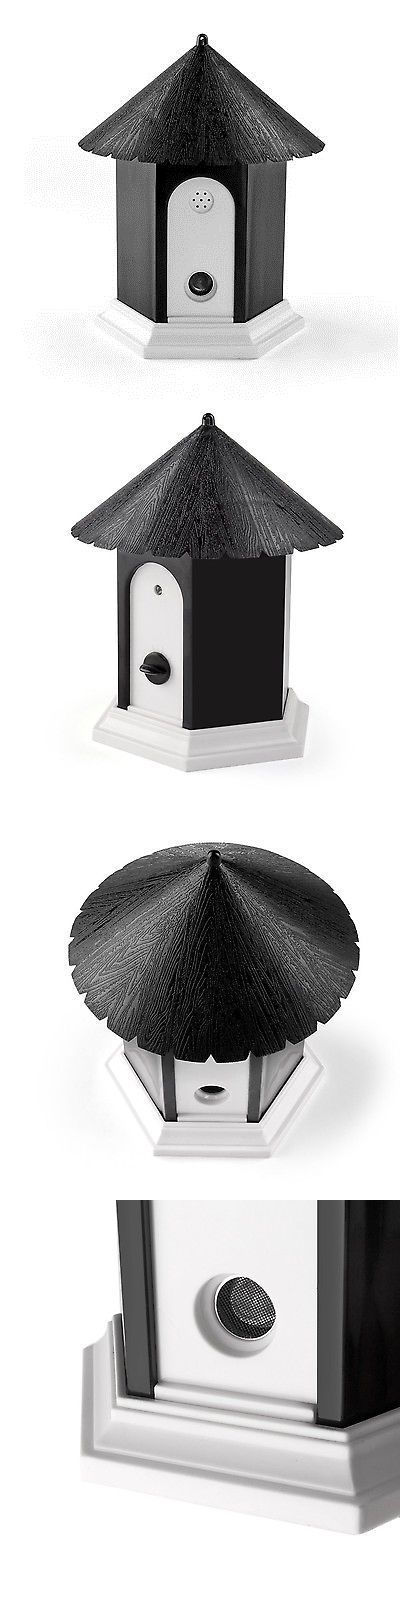 Sonic Trainers 146244: Pepemama Ultrasonic Dog Bark Controller Device In Birdhouse Shape Stop Do... New -> BUY IT NOW ONLY: $34.94 on eBay!